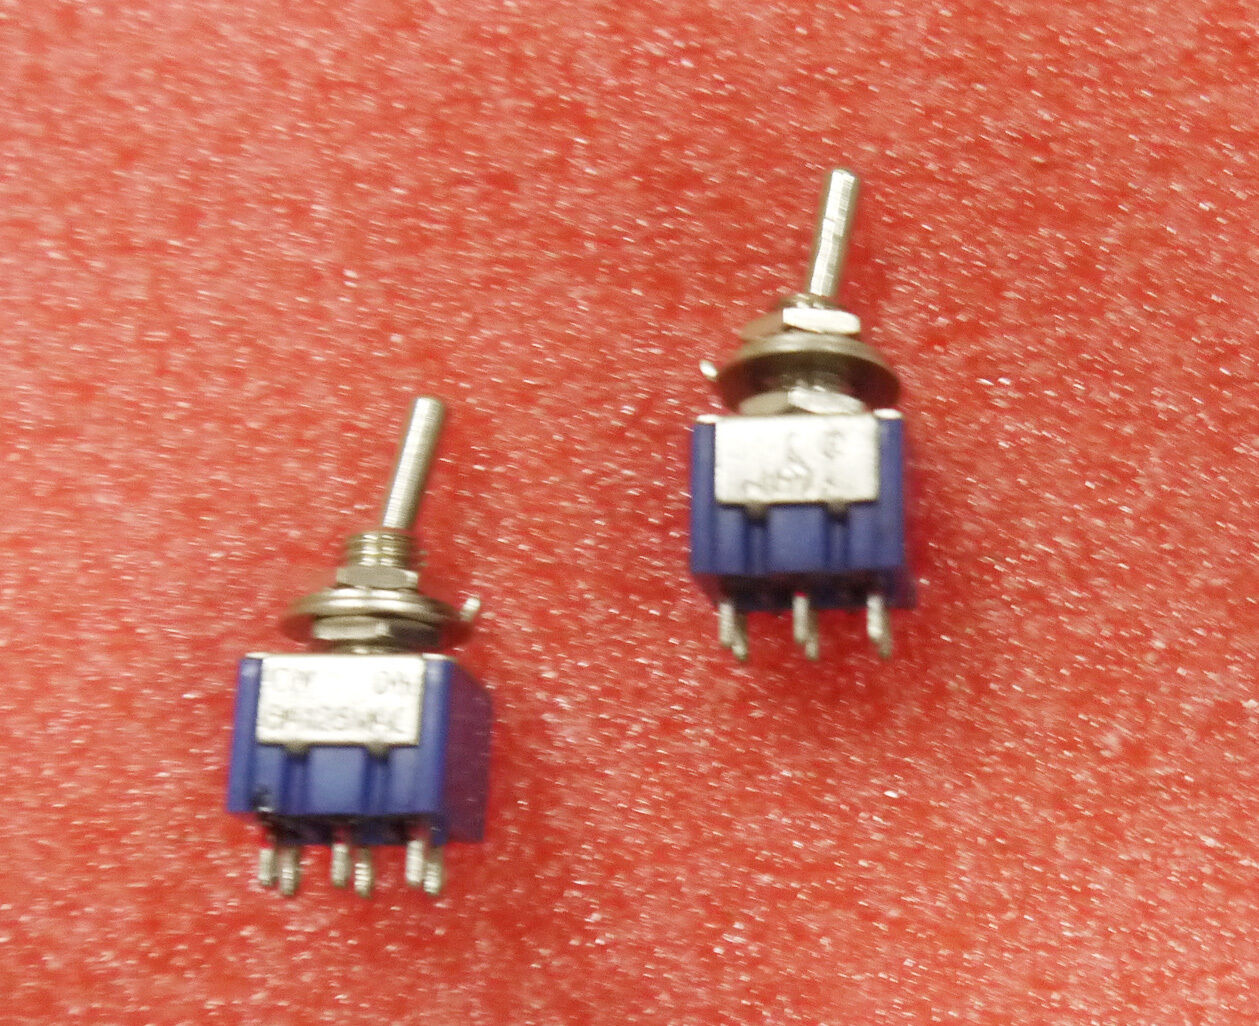 10x Mts 202 Latch Miniature Toggle Switch 6pin On 2 Positions Latching Spst Push Button 1 Circuit 3a 250v Offon Ebay Picture Of